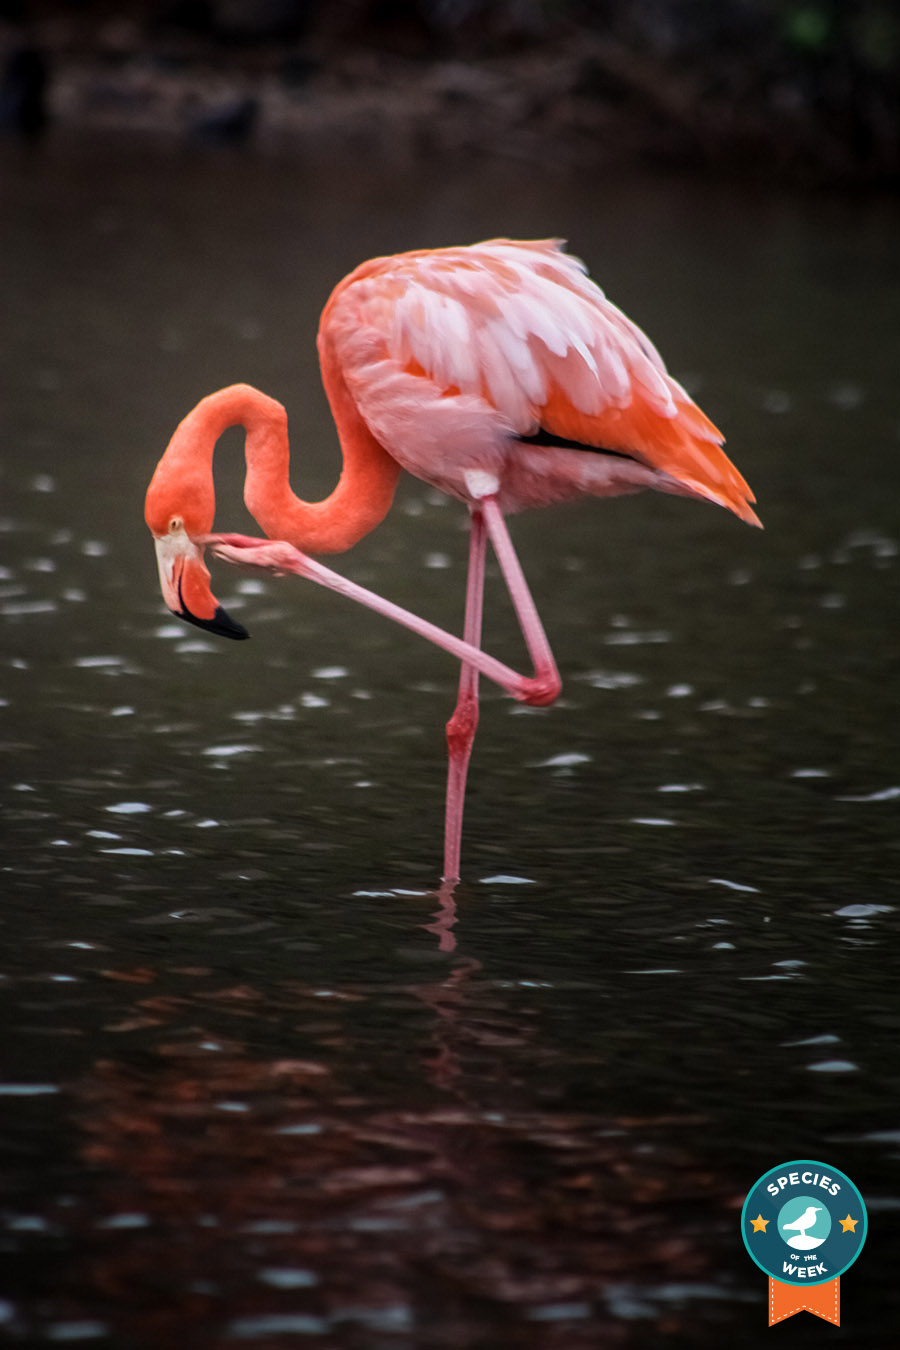 Island Conservation science cabritos isla island science dominican republic flamingo